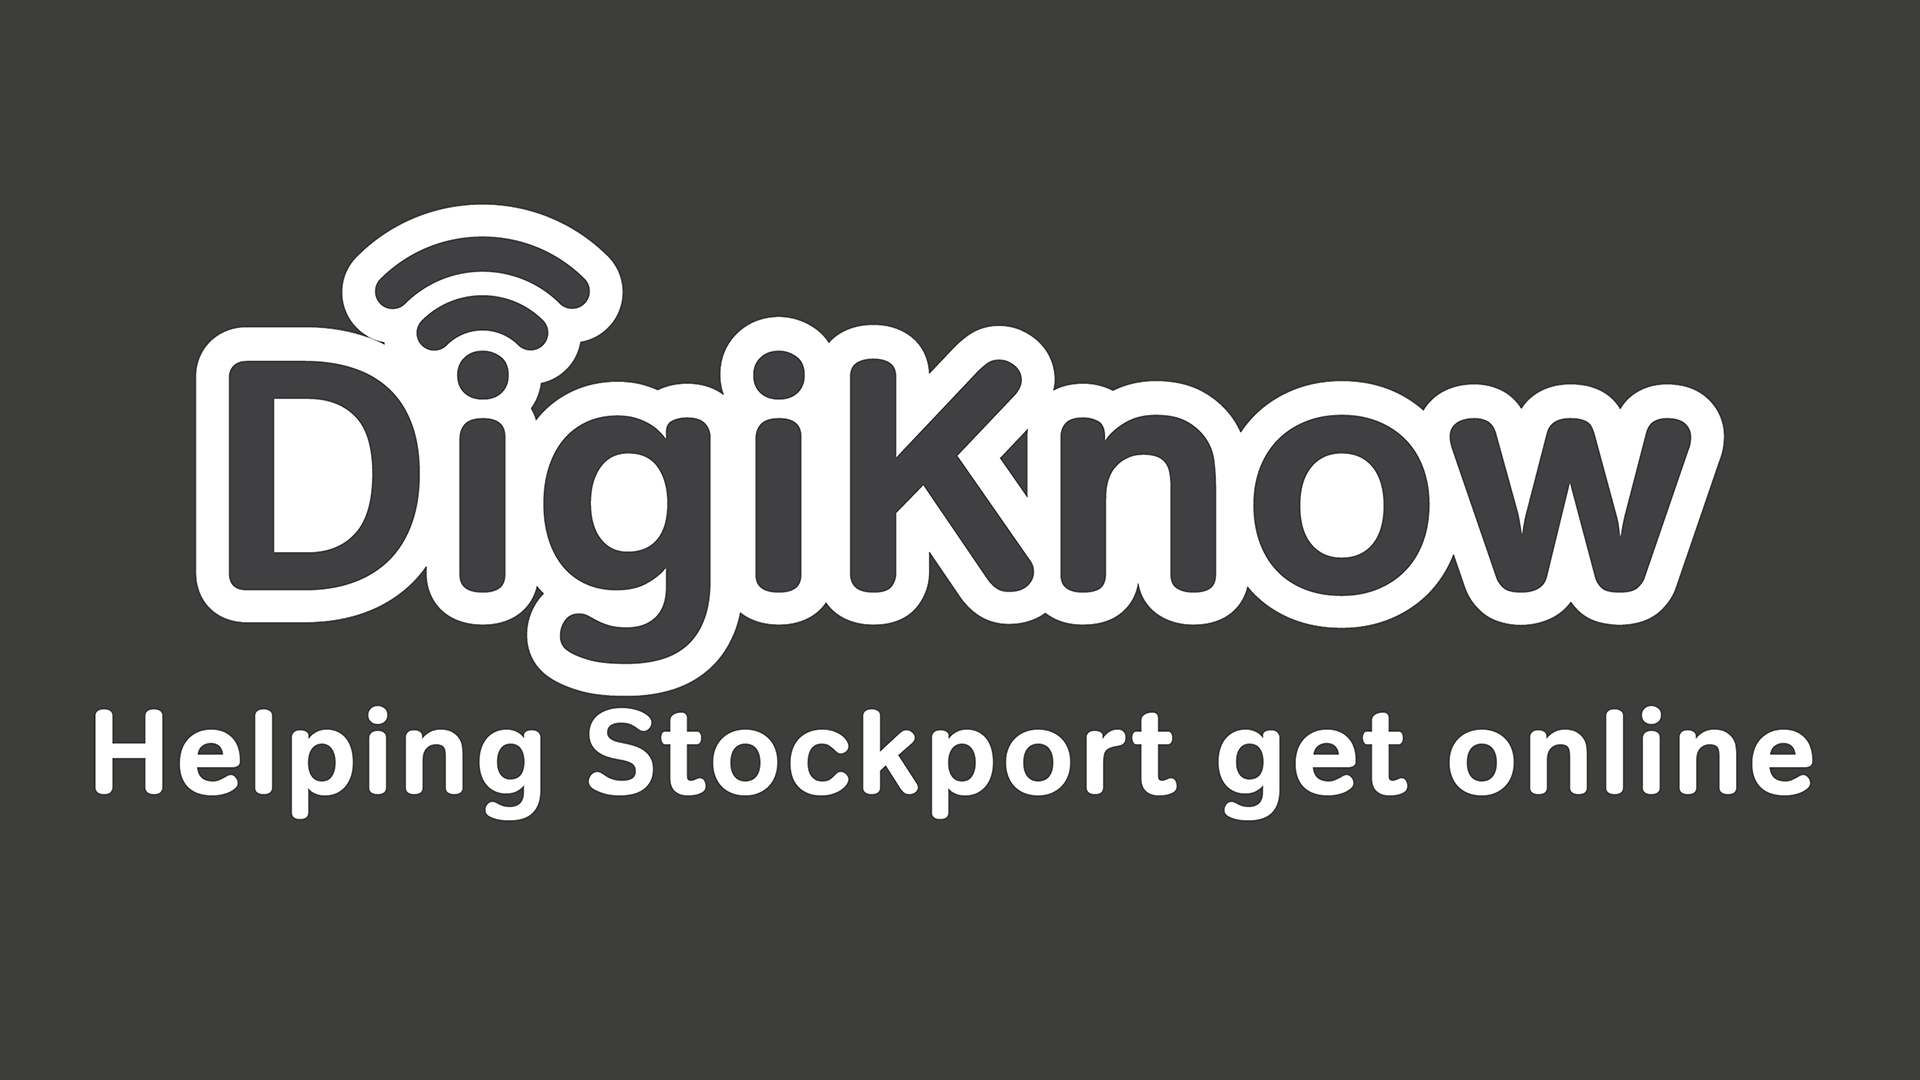 Could you learn to help others get online in Stockport?